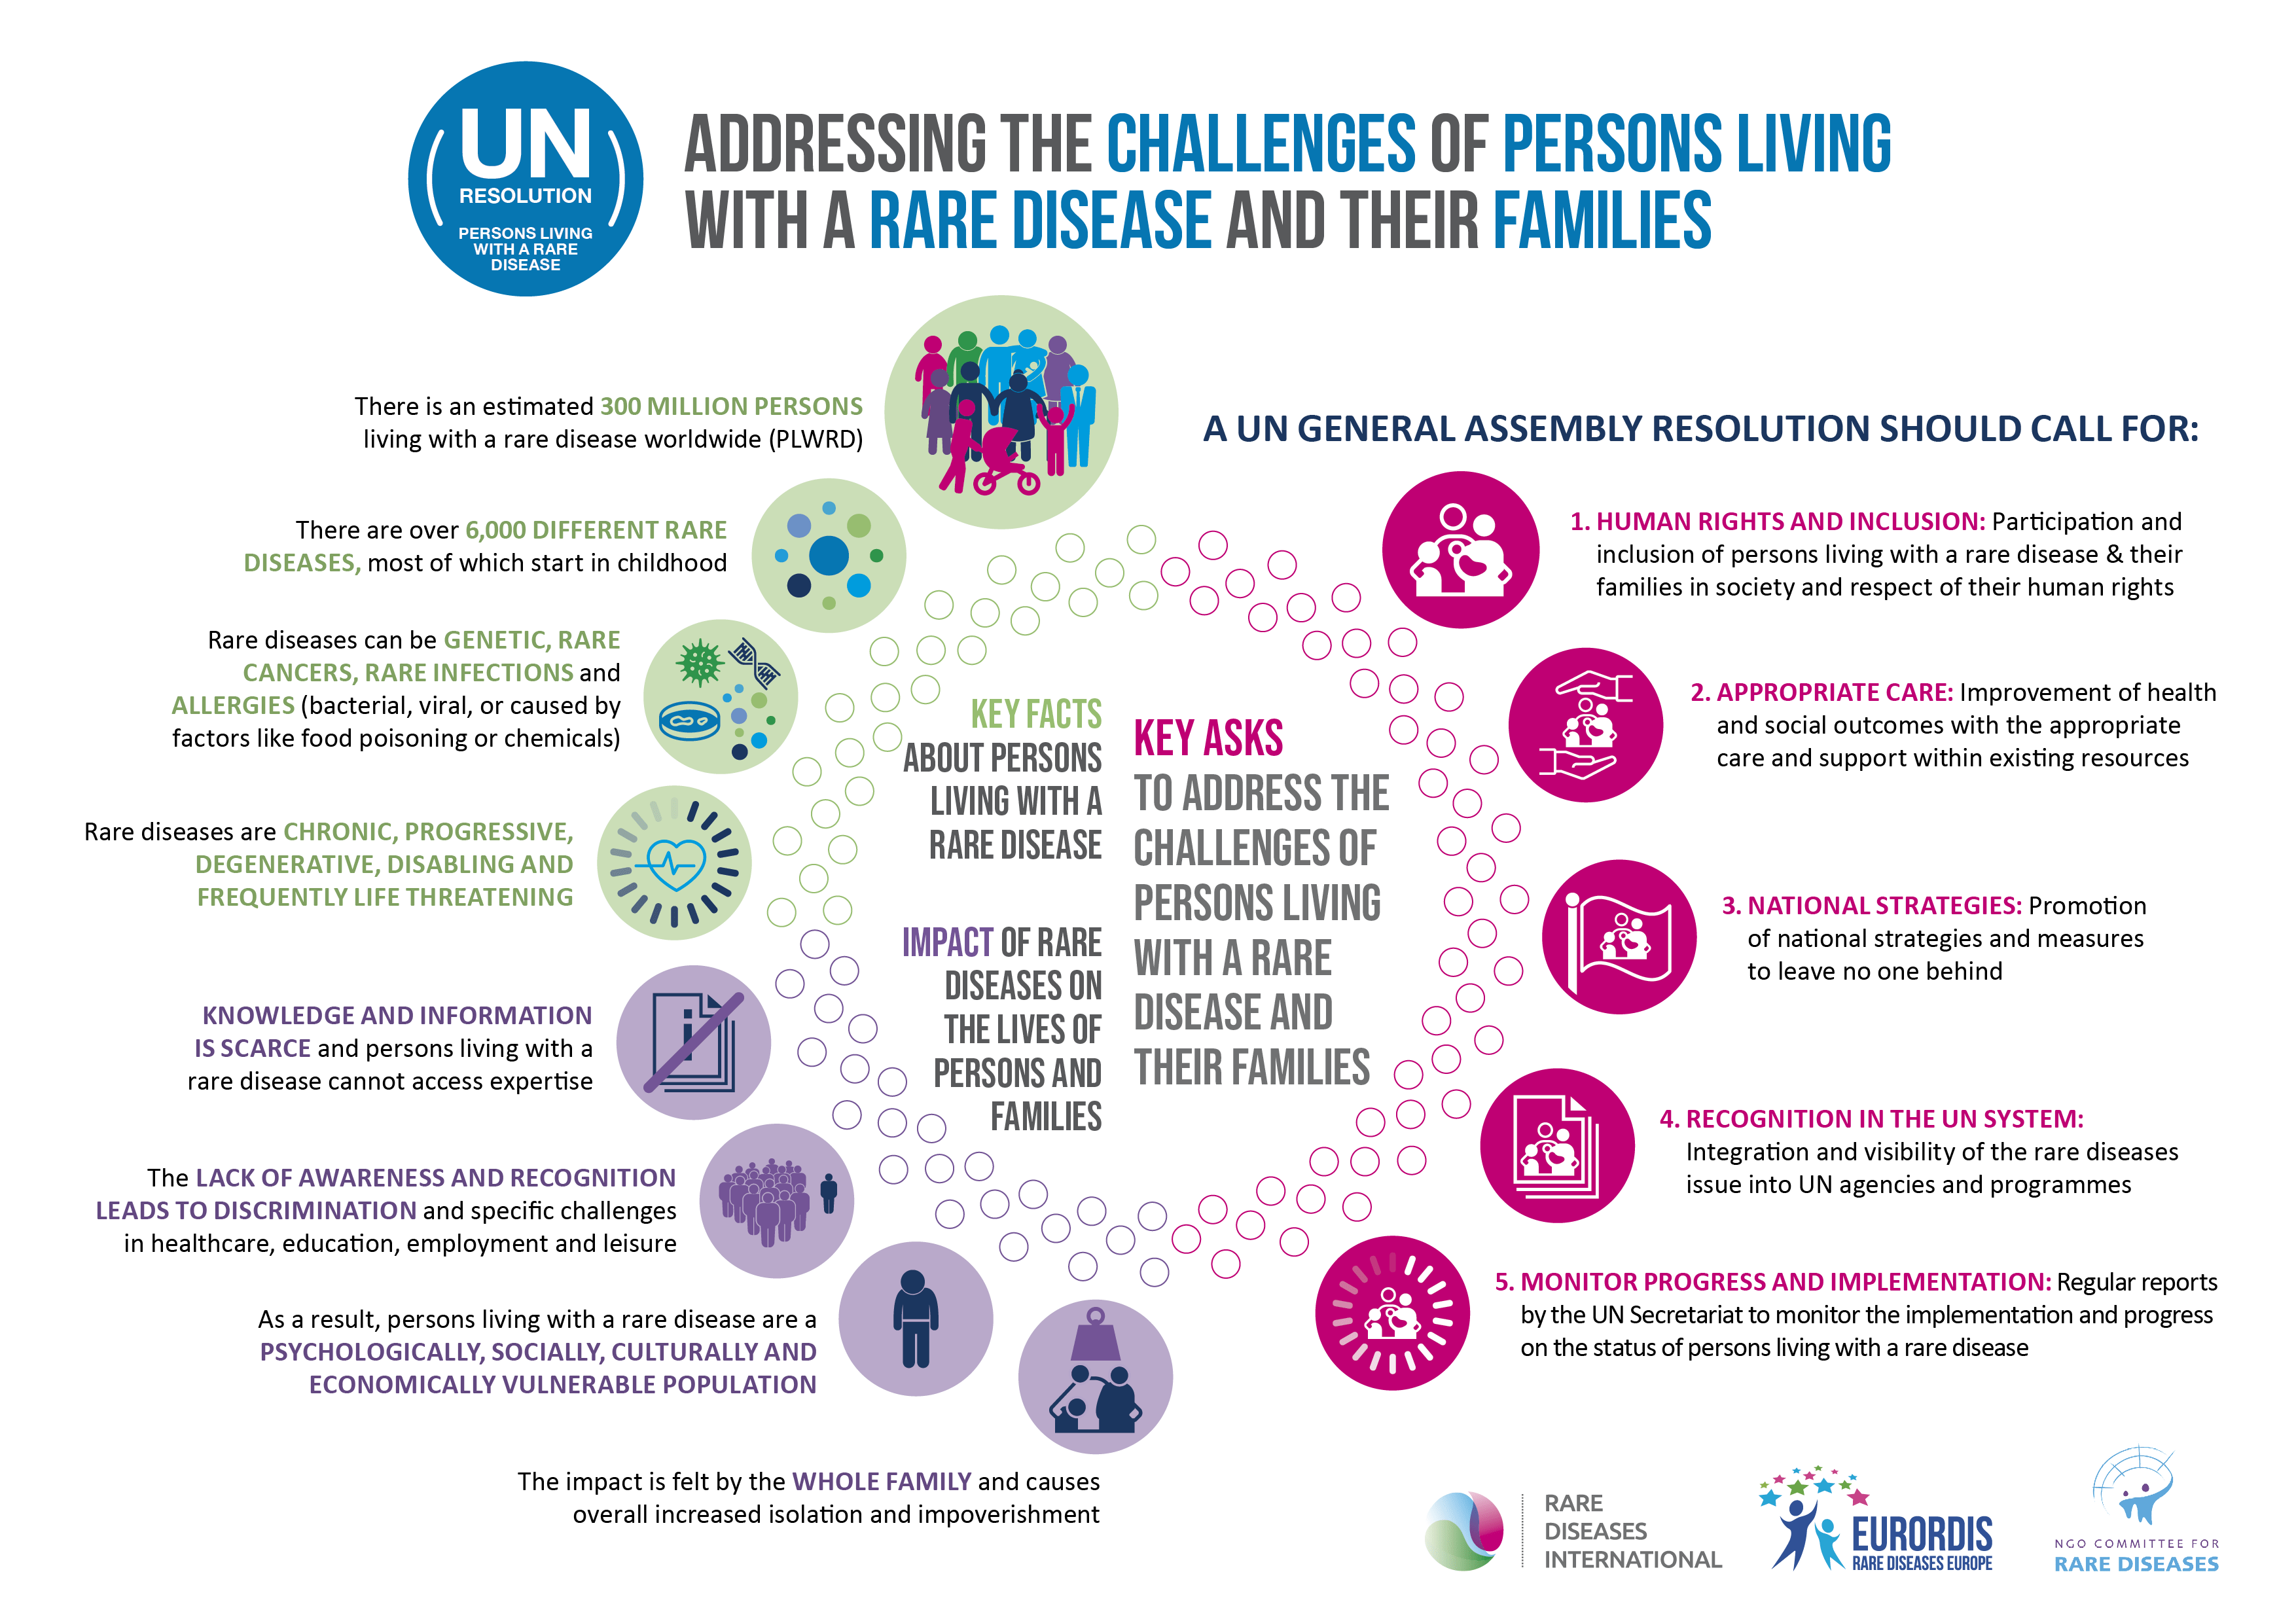 infographic on the UN Resolution